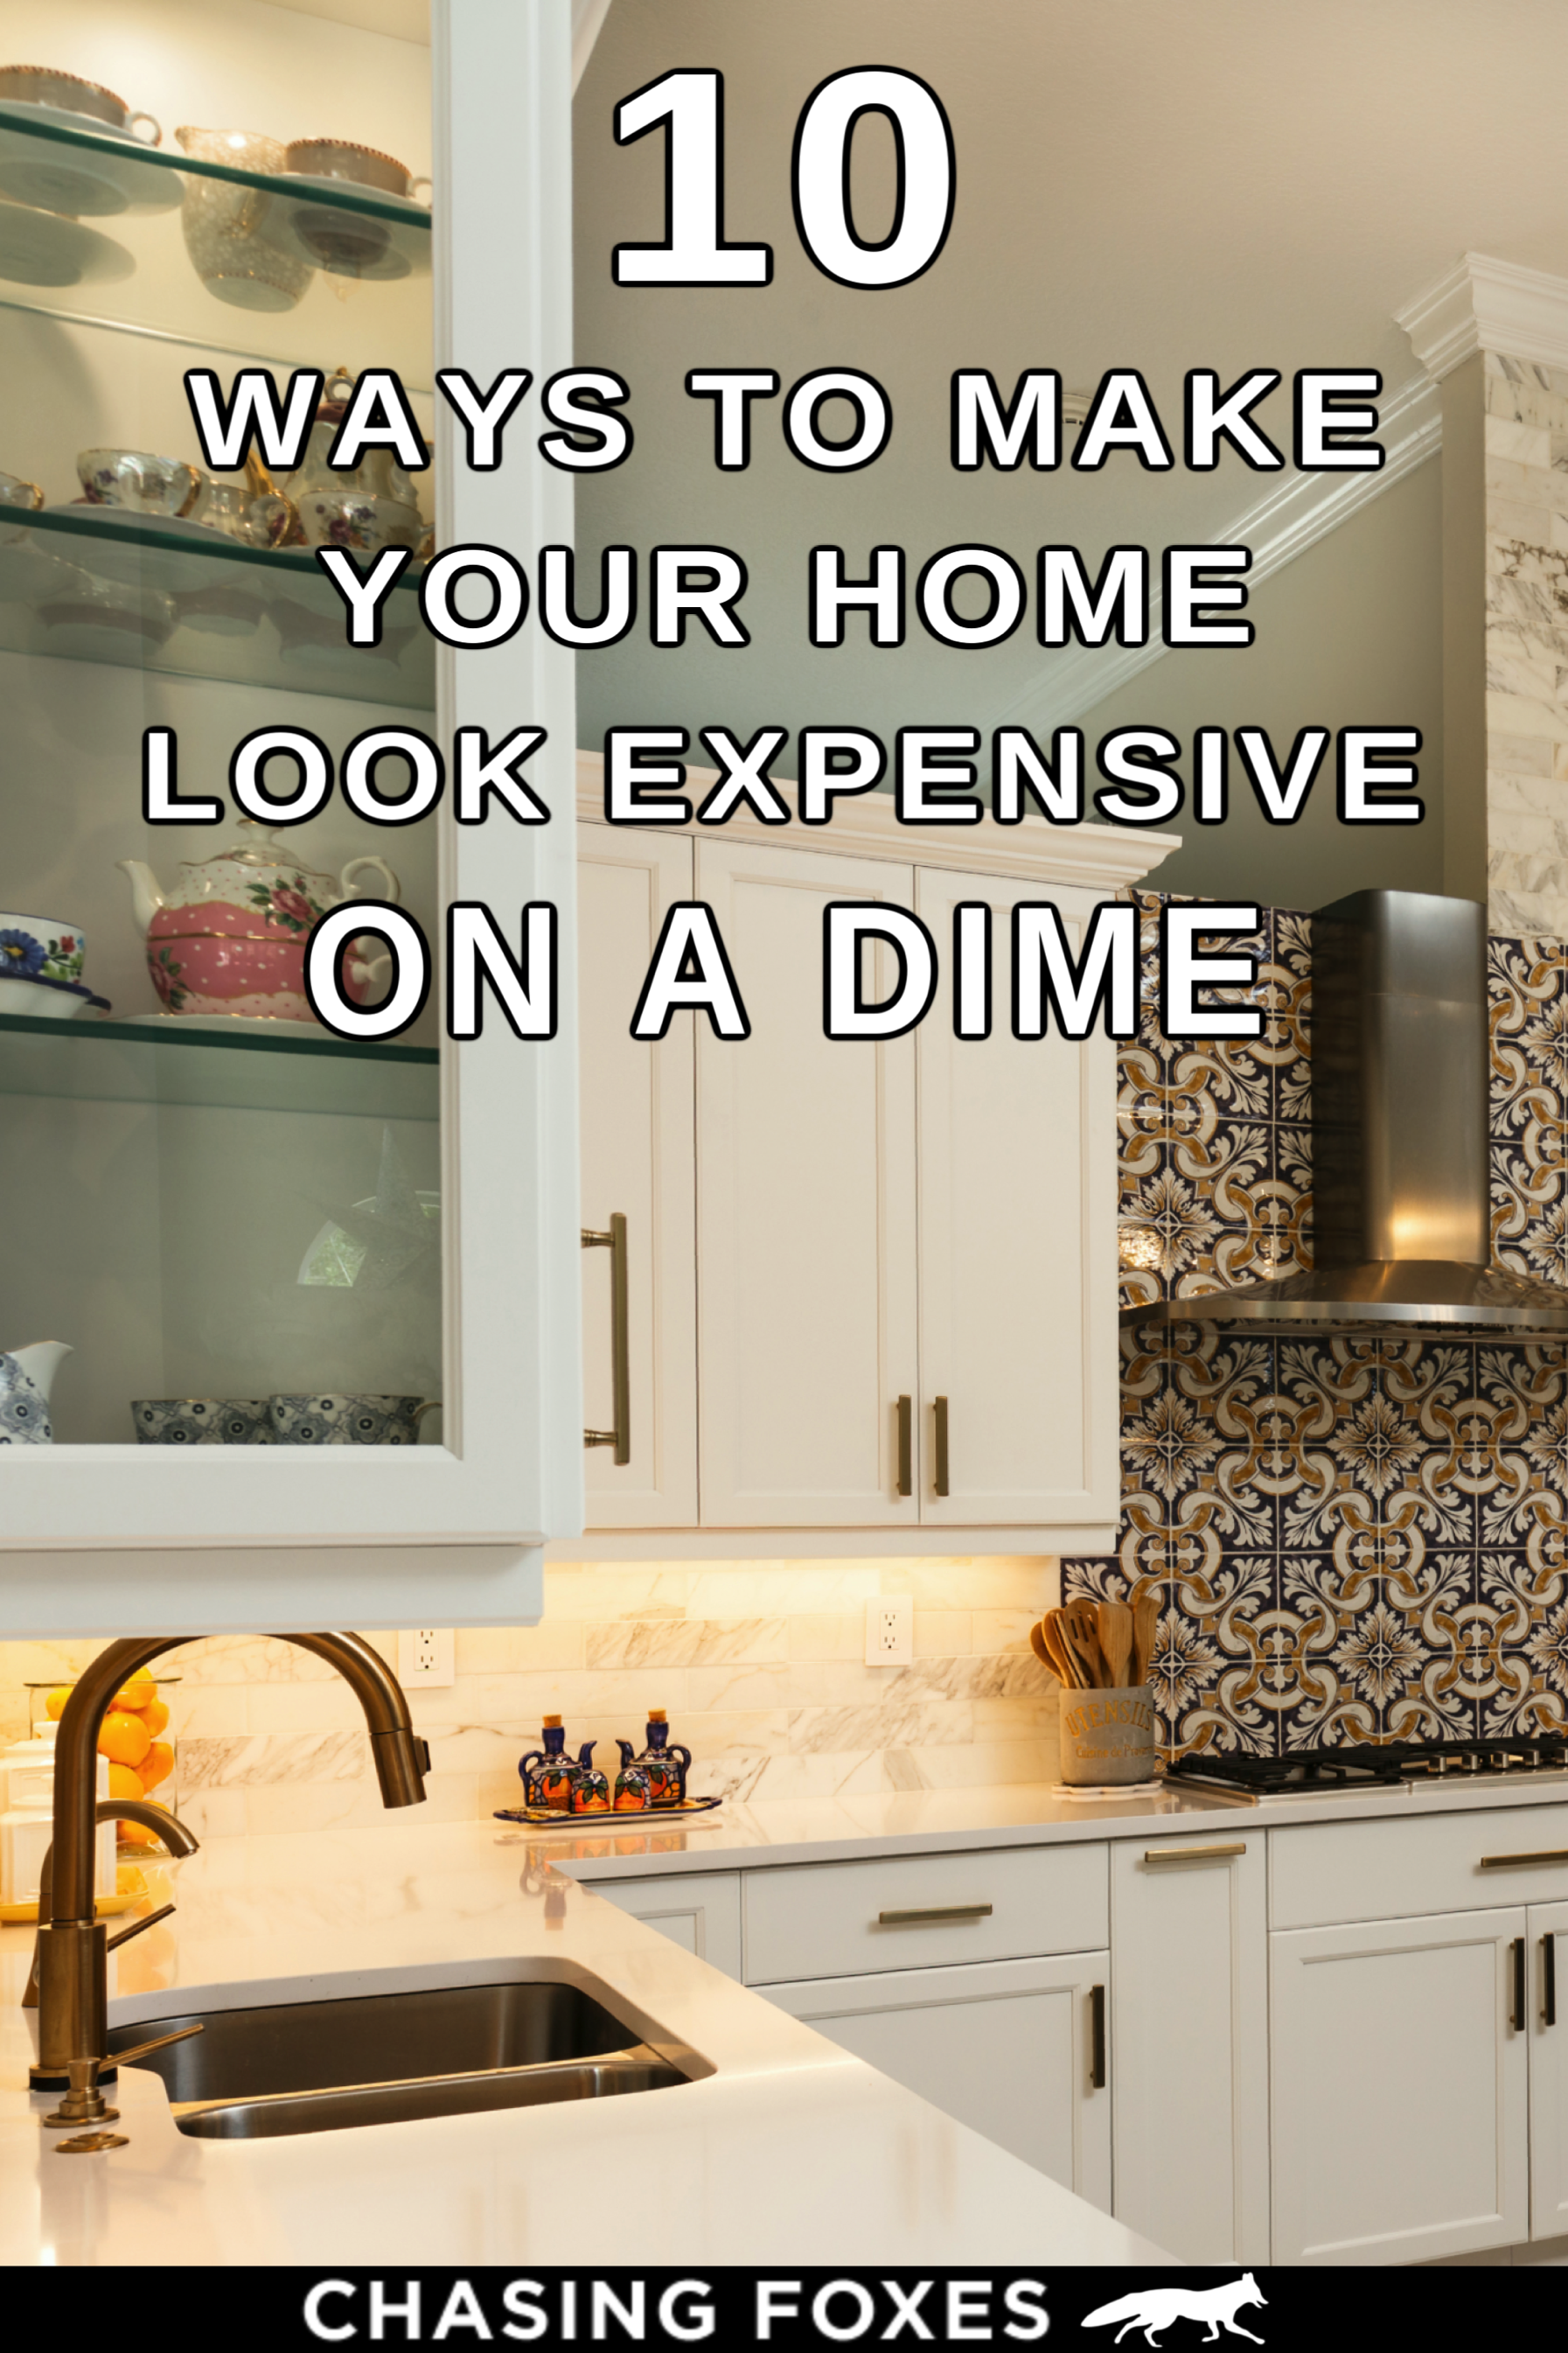 10 Awesome Cheap Home Decor Hacks And Tips In 2020 Cheap Home Decor Home Decor Hacks Home Decor